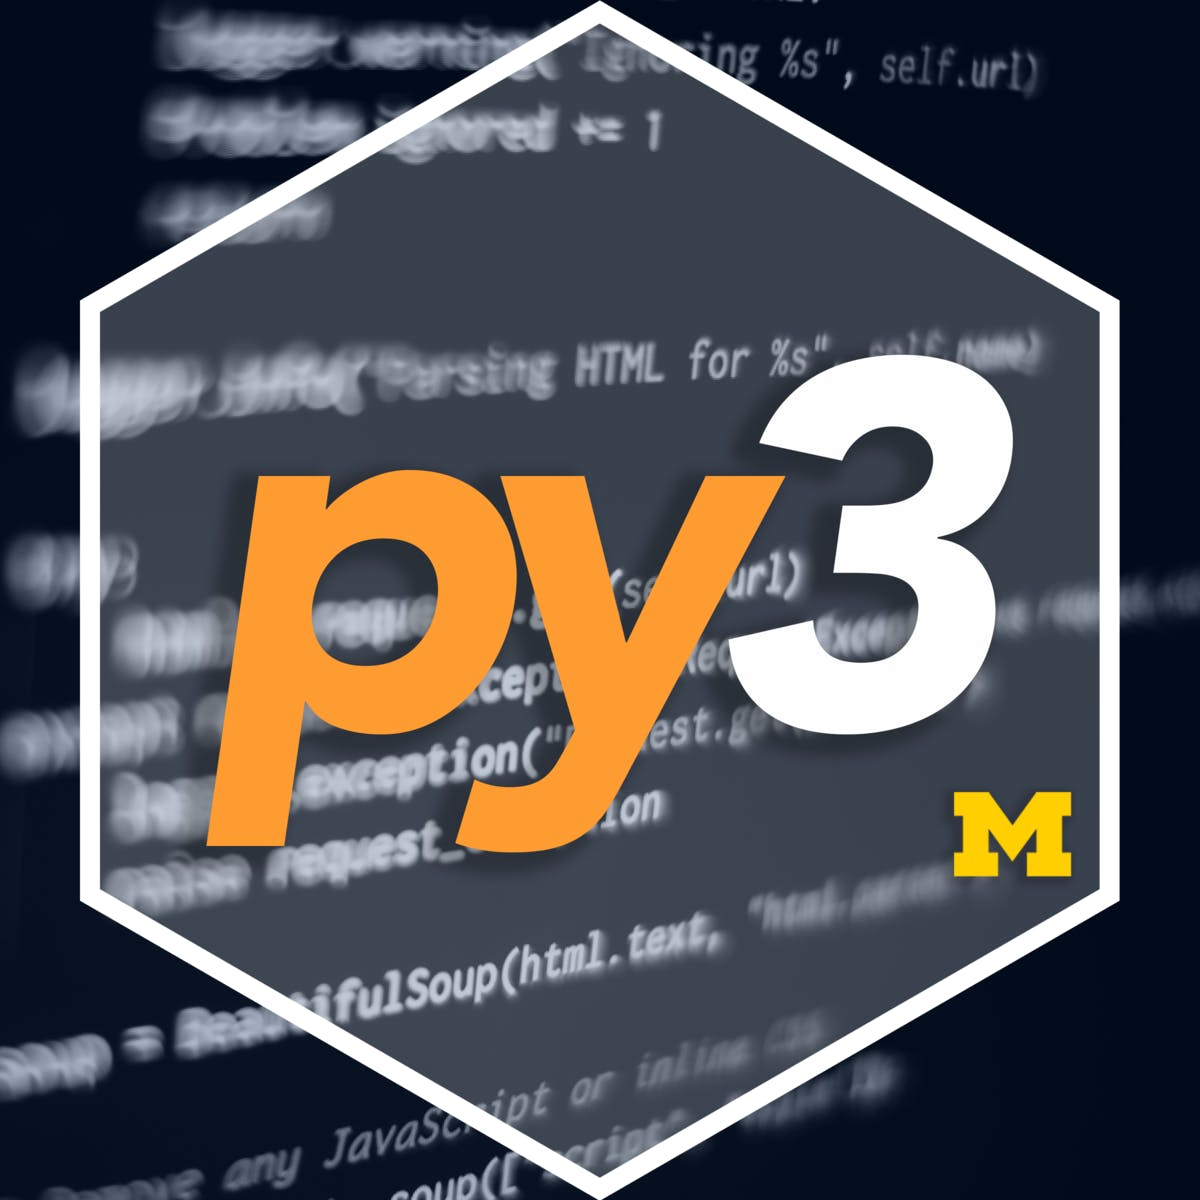 Data Collection and Processing with Python